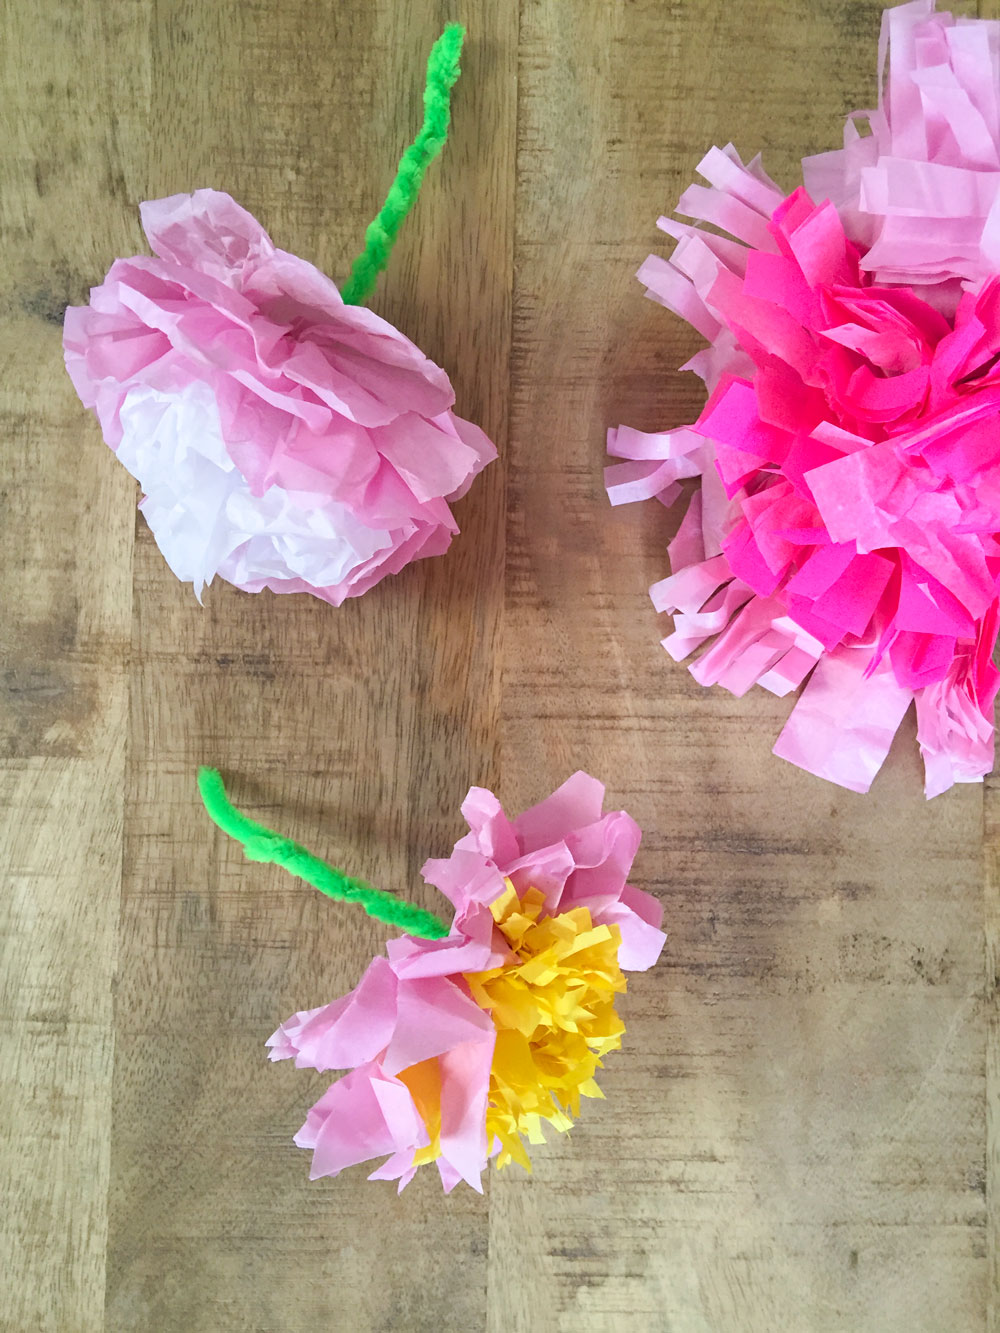 Tissue Paper Flowers Babyccino Kids Daily Tips Children S Products Craft Ideas Recipes More